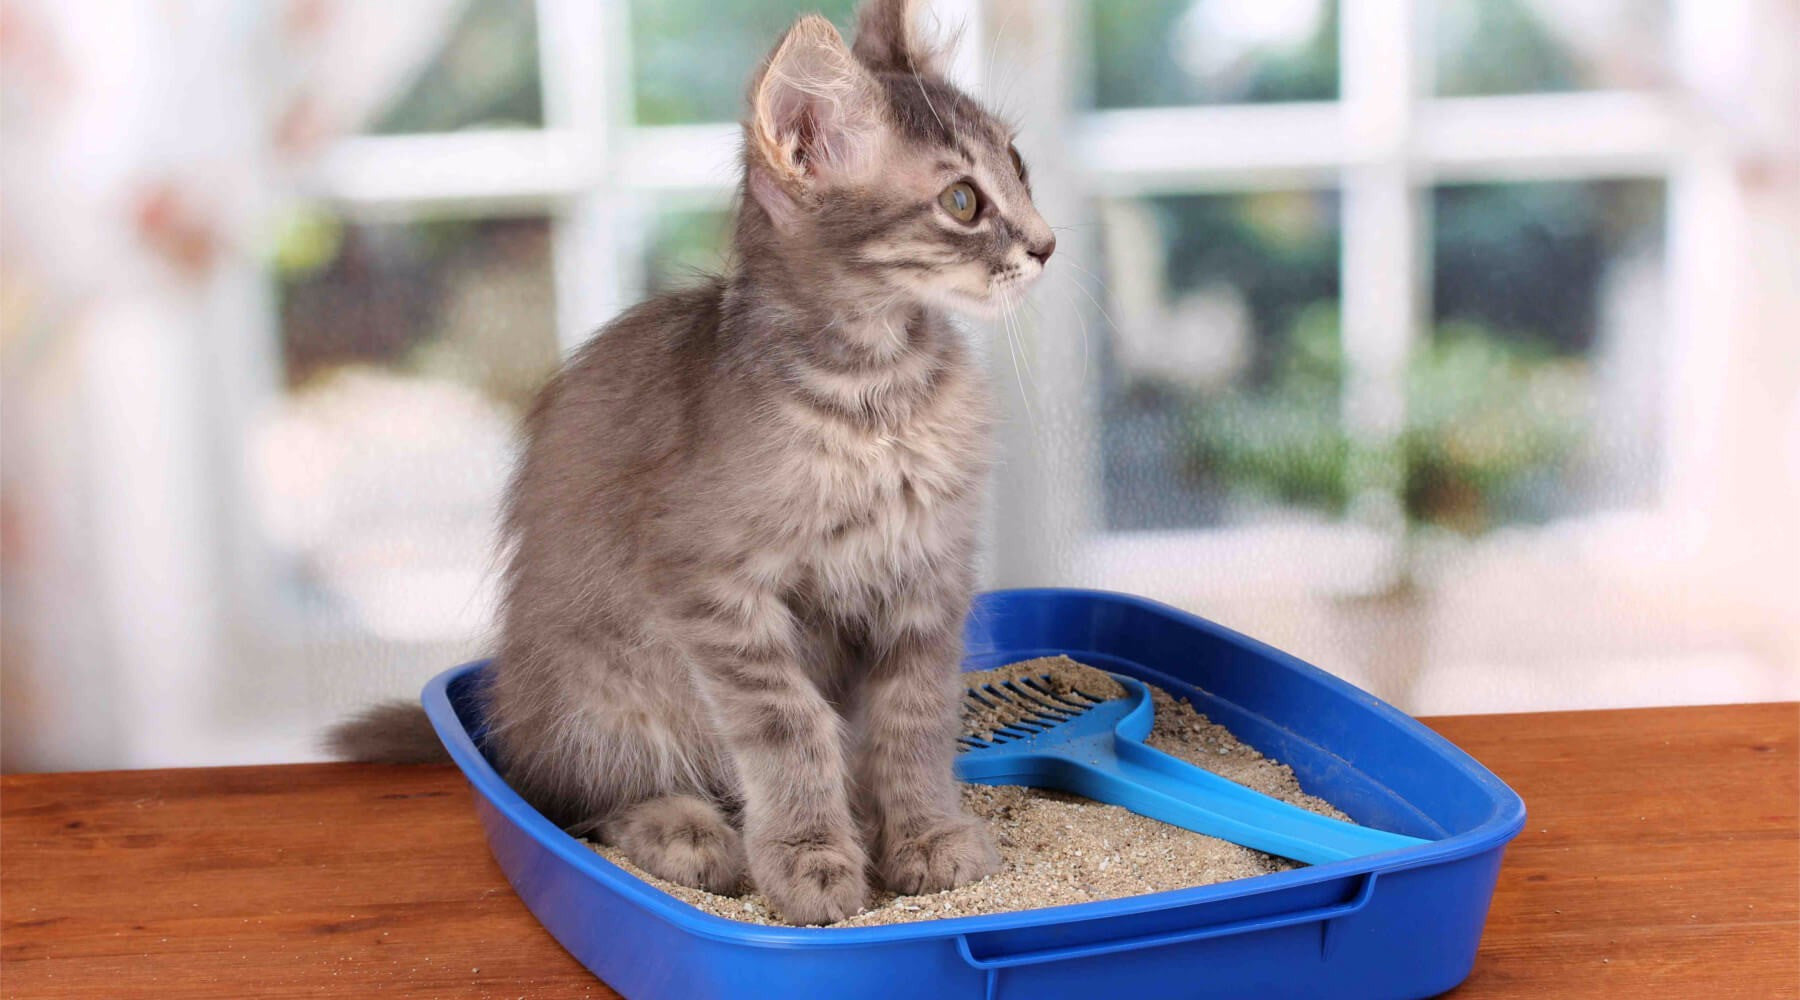 Remove Stinky Cat Litter Odors With These 4 Simple Solutions